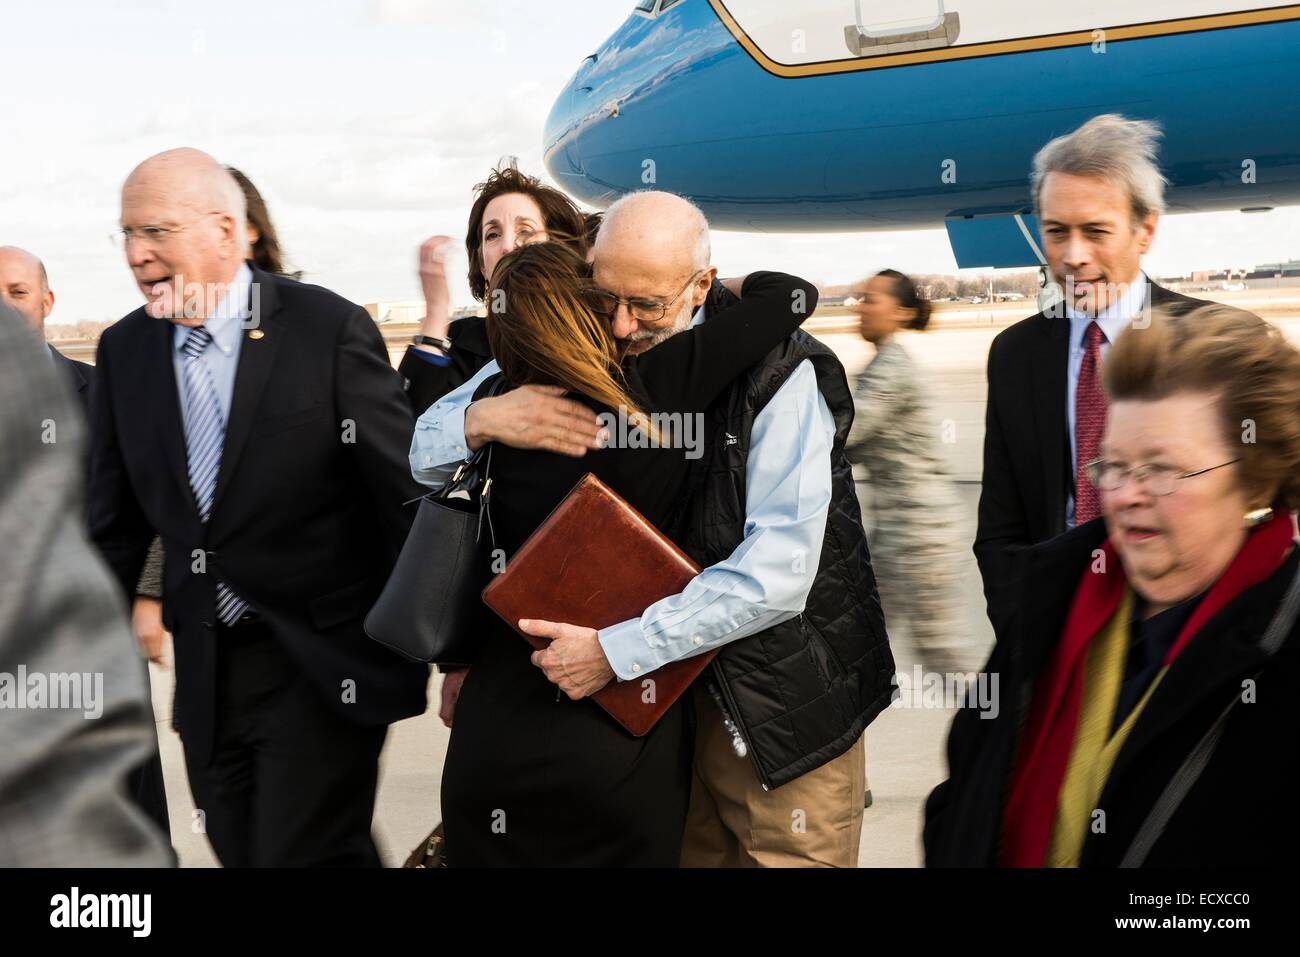 USAID contractor Alan Gross, imprisoned in Cuba for five years, is greeted after a flight back from Cuba following - Stock Image